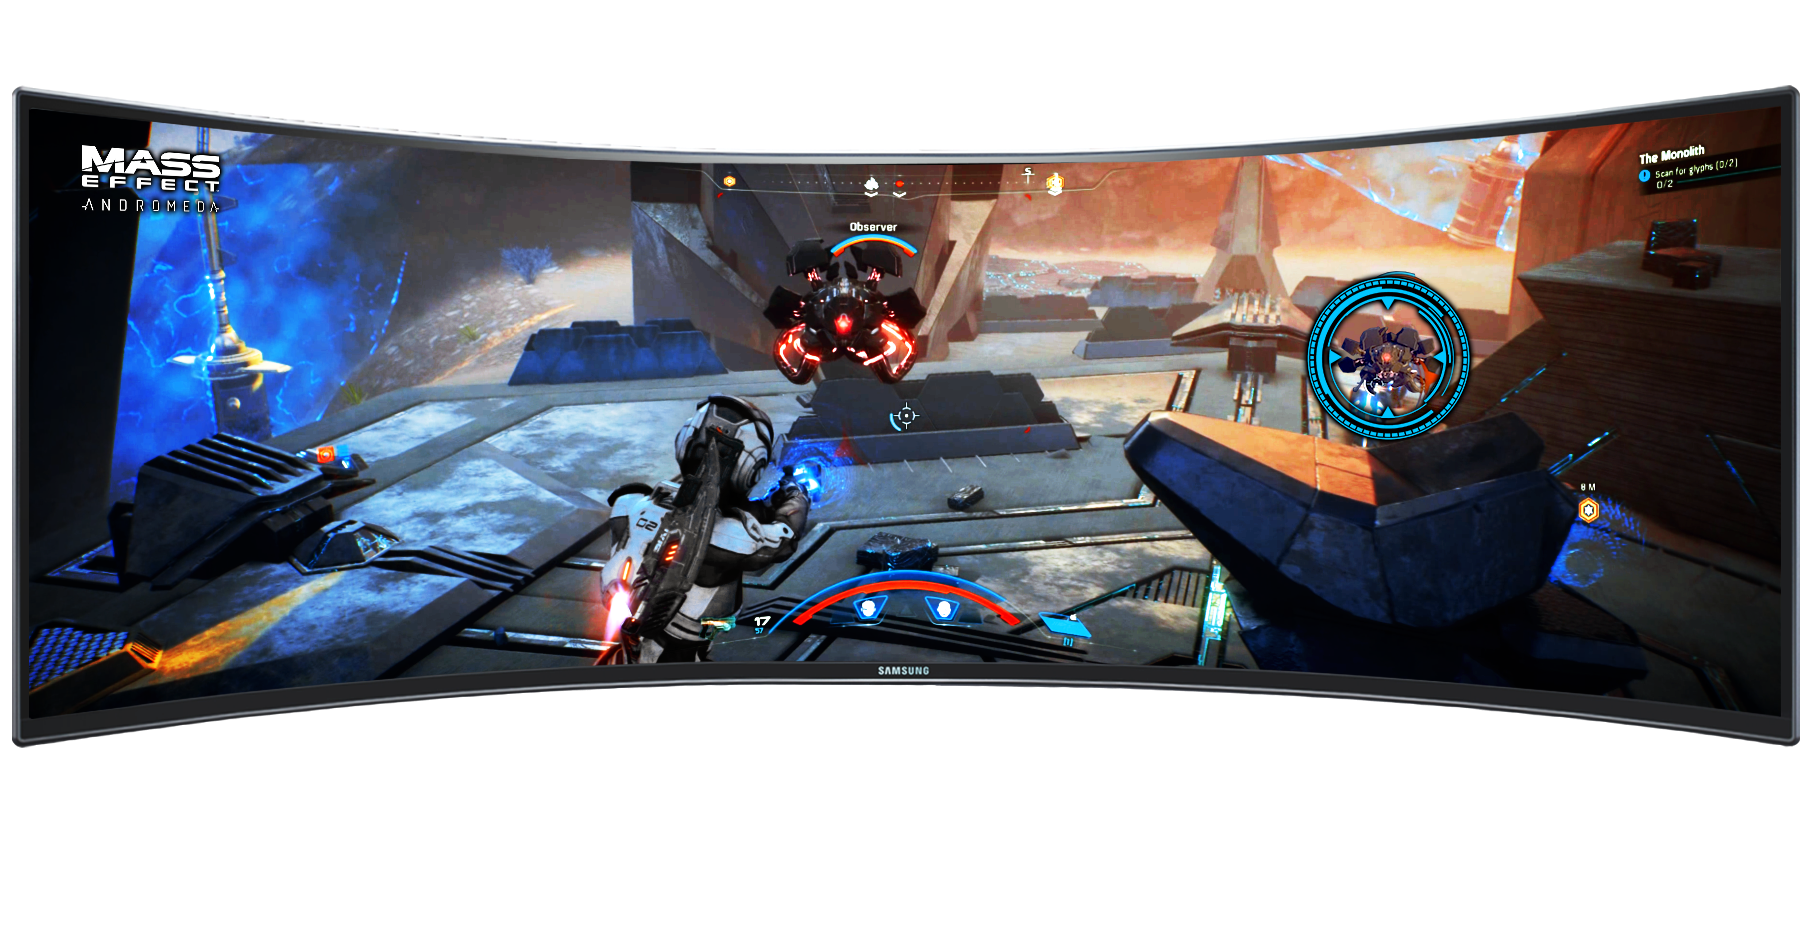 Motion image comparing conventional monitor's 16:9 screen ratio with 32:9 of Samsung QLED gaming monitor.